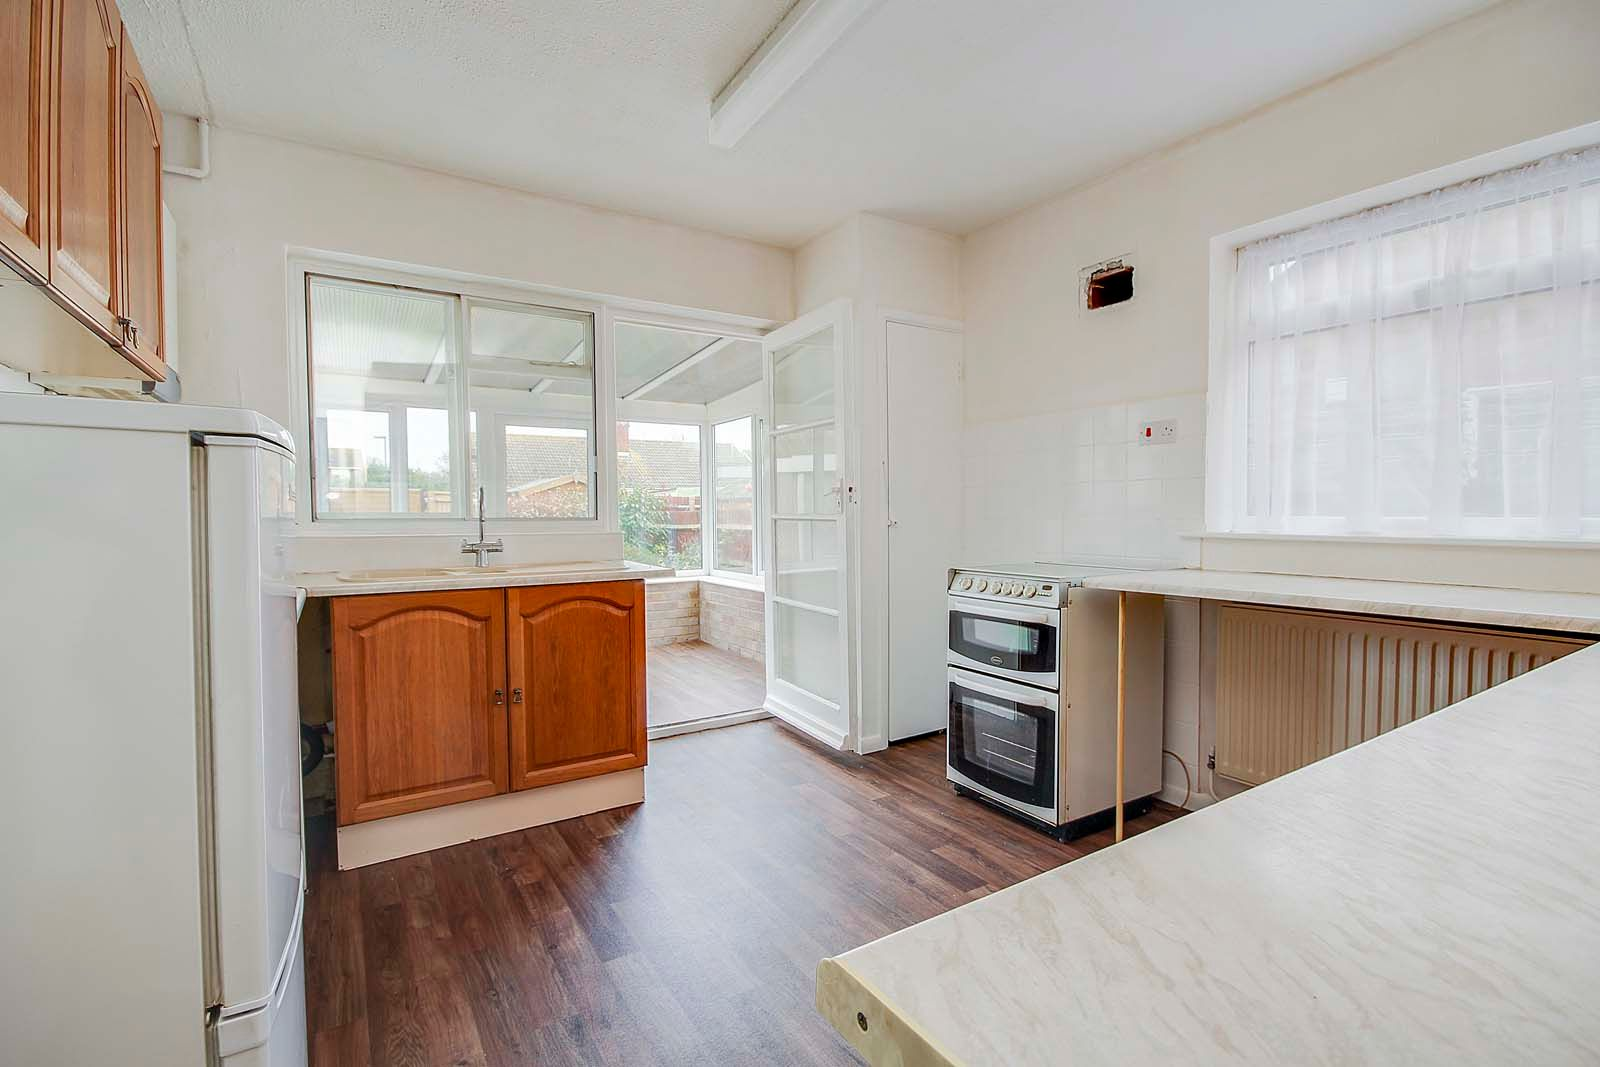 2 bed bungalow for sale in Ashurst Way COMP July 2019 3